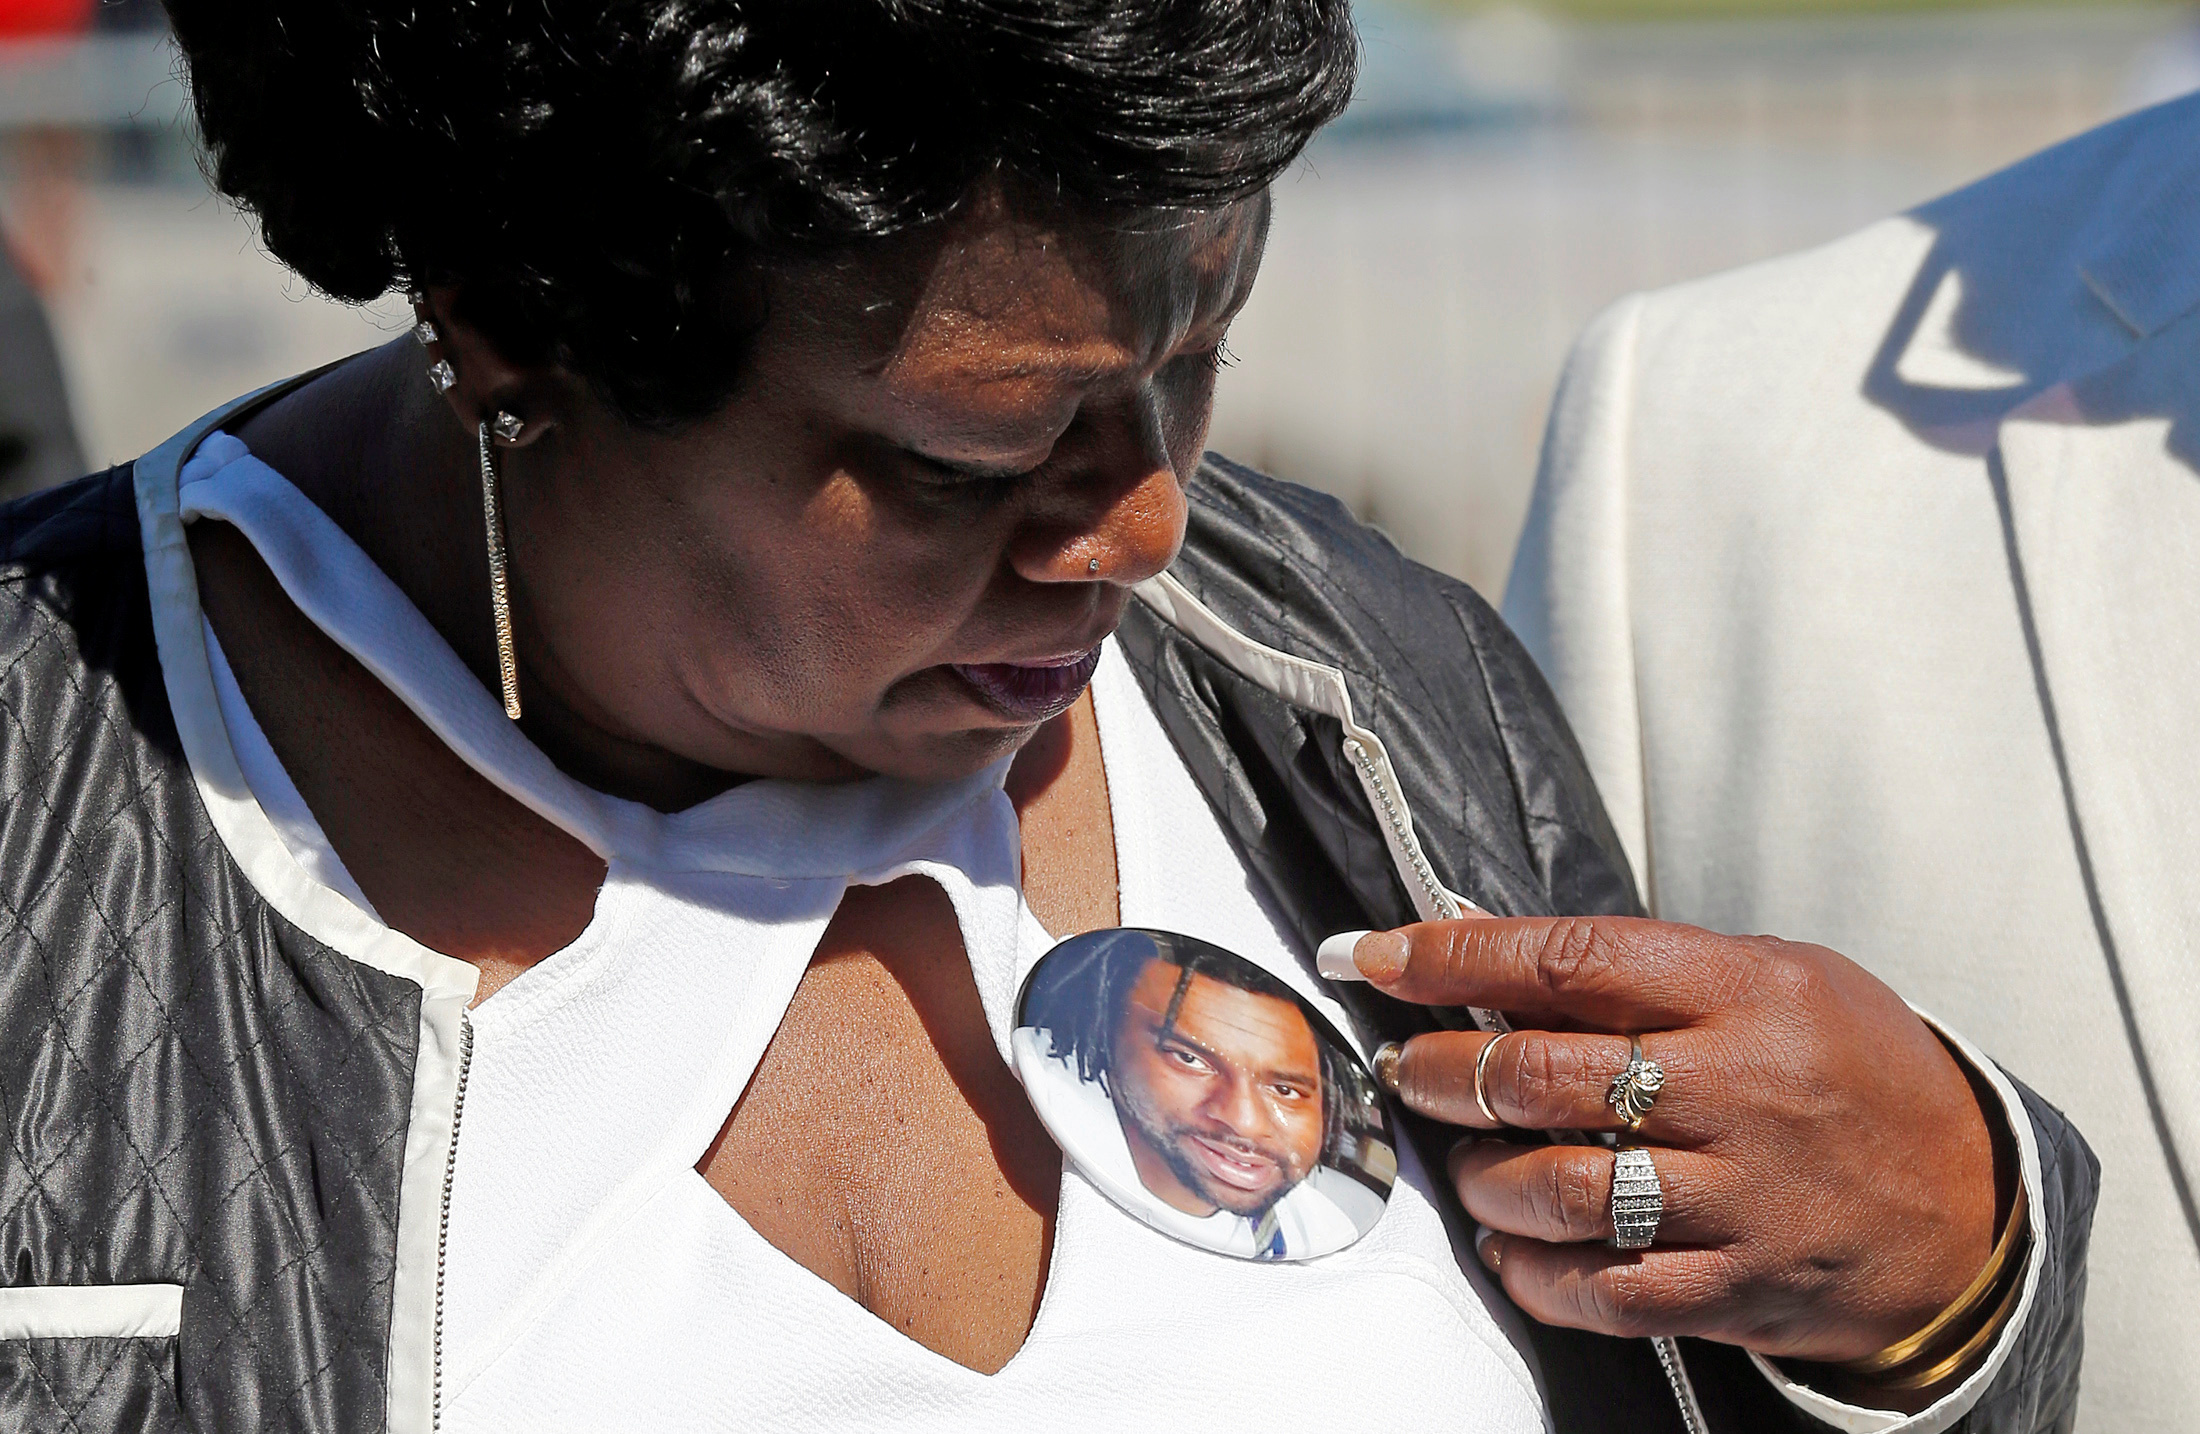 The Driving Life And Death Of Philando Castile